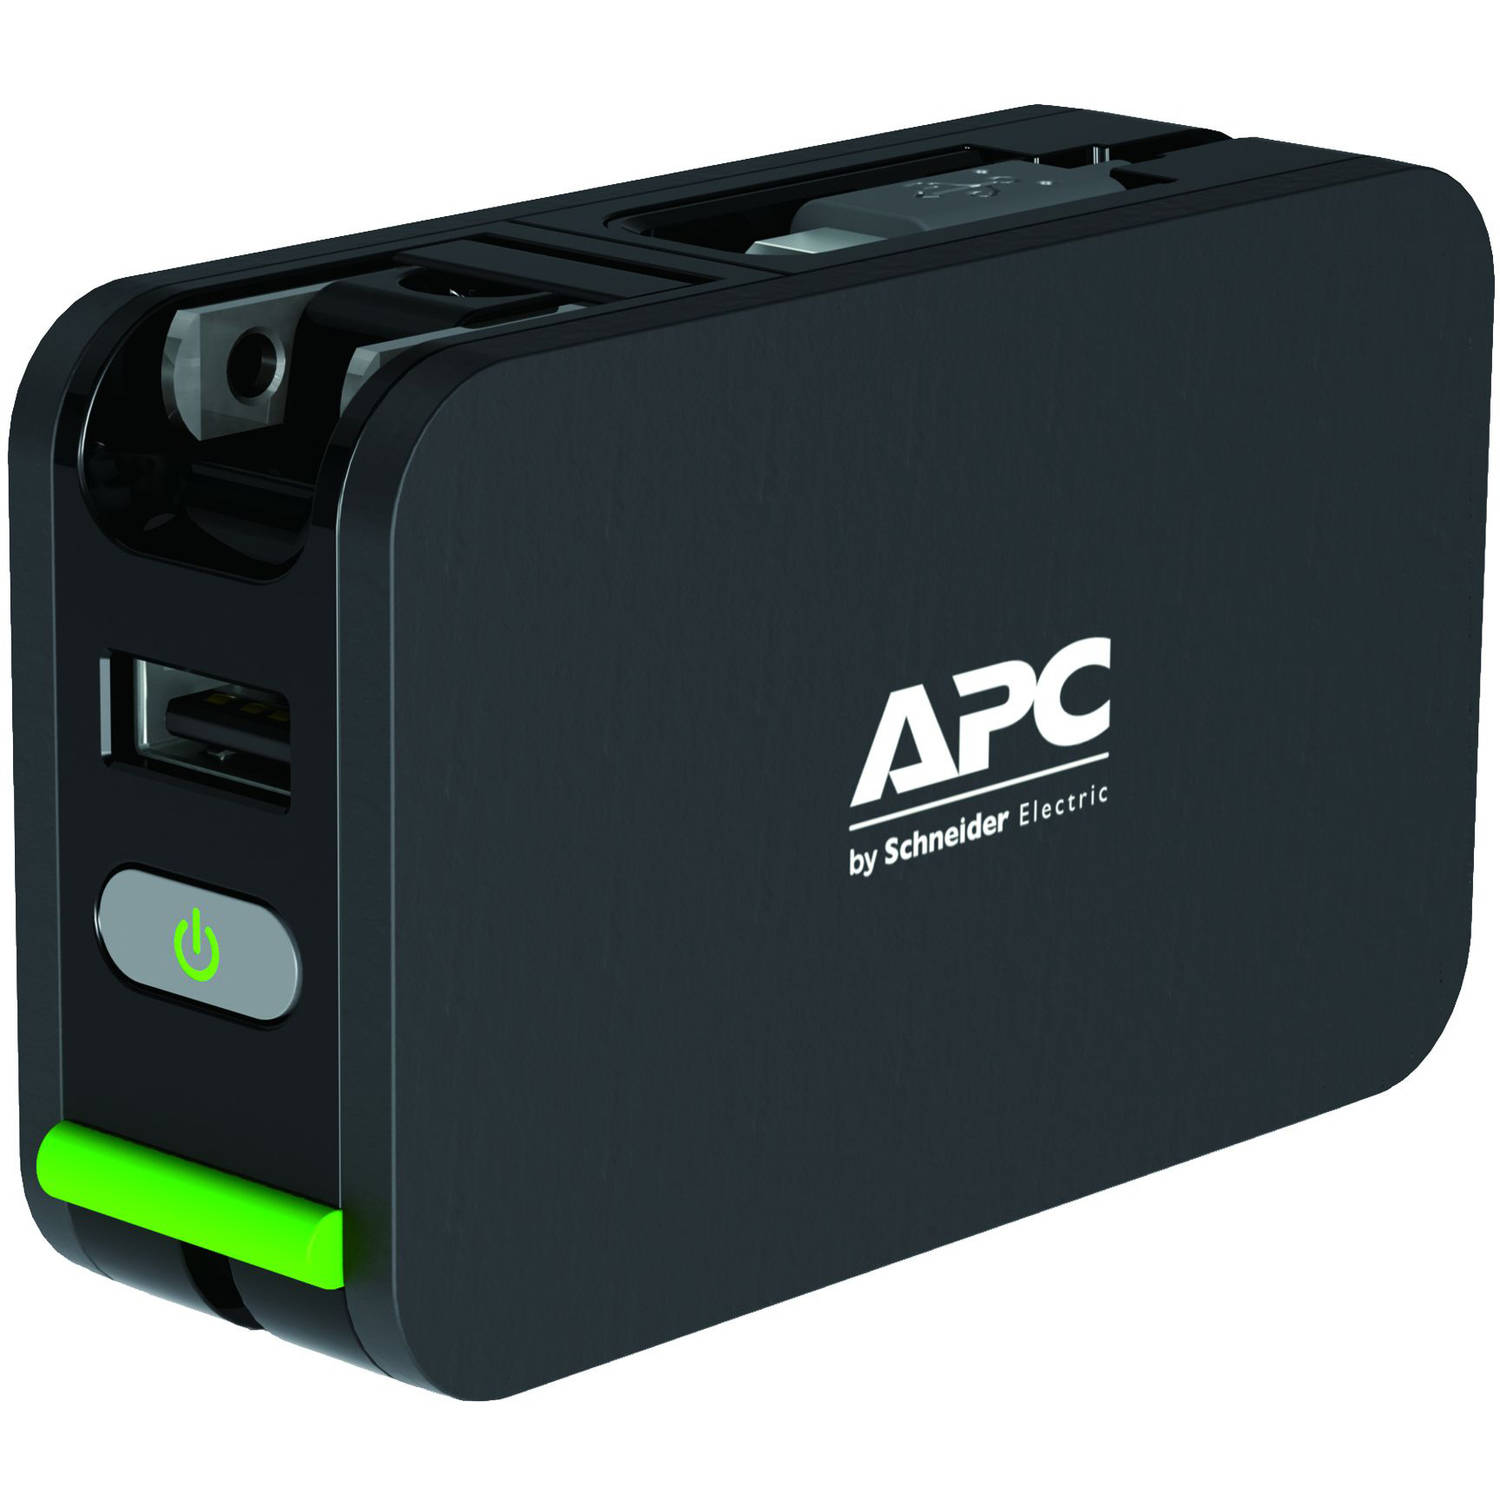 APC Mobile Power Pack, 3400mAh